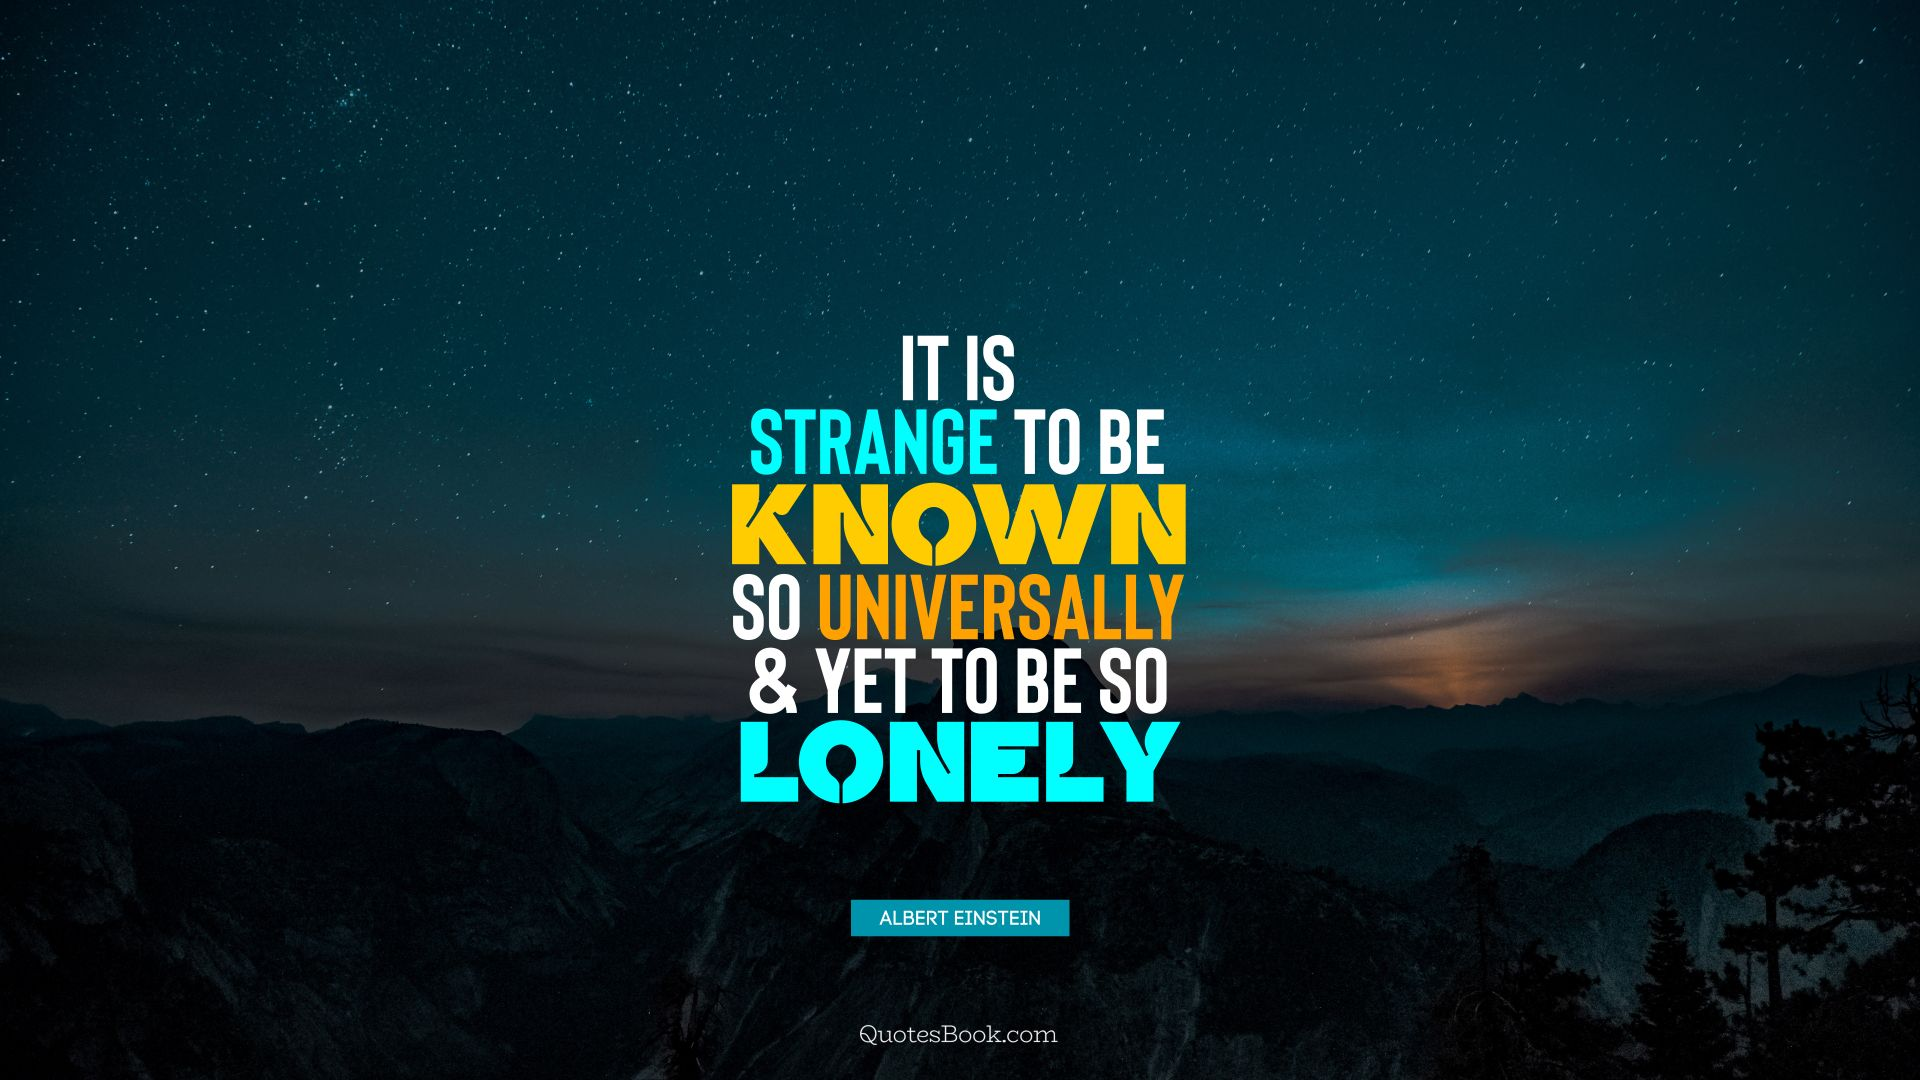 It is strange to be known so universally and yet to be so lonely. - Quote by Albert Einstein